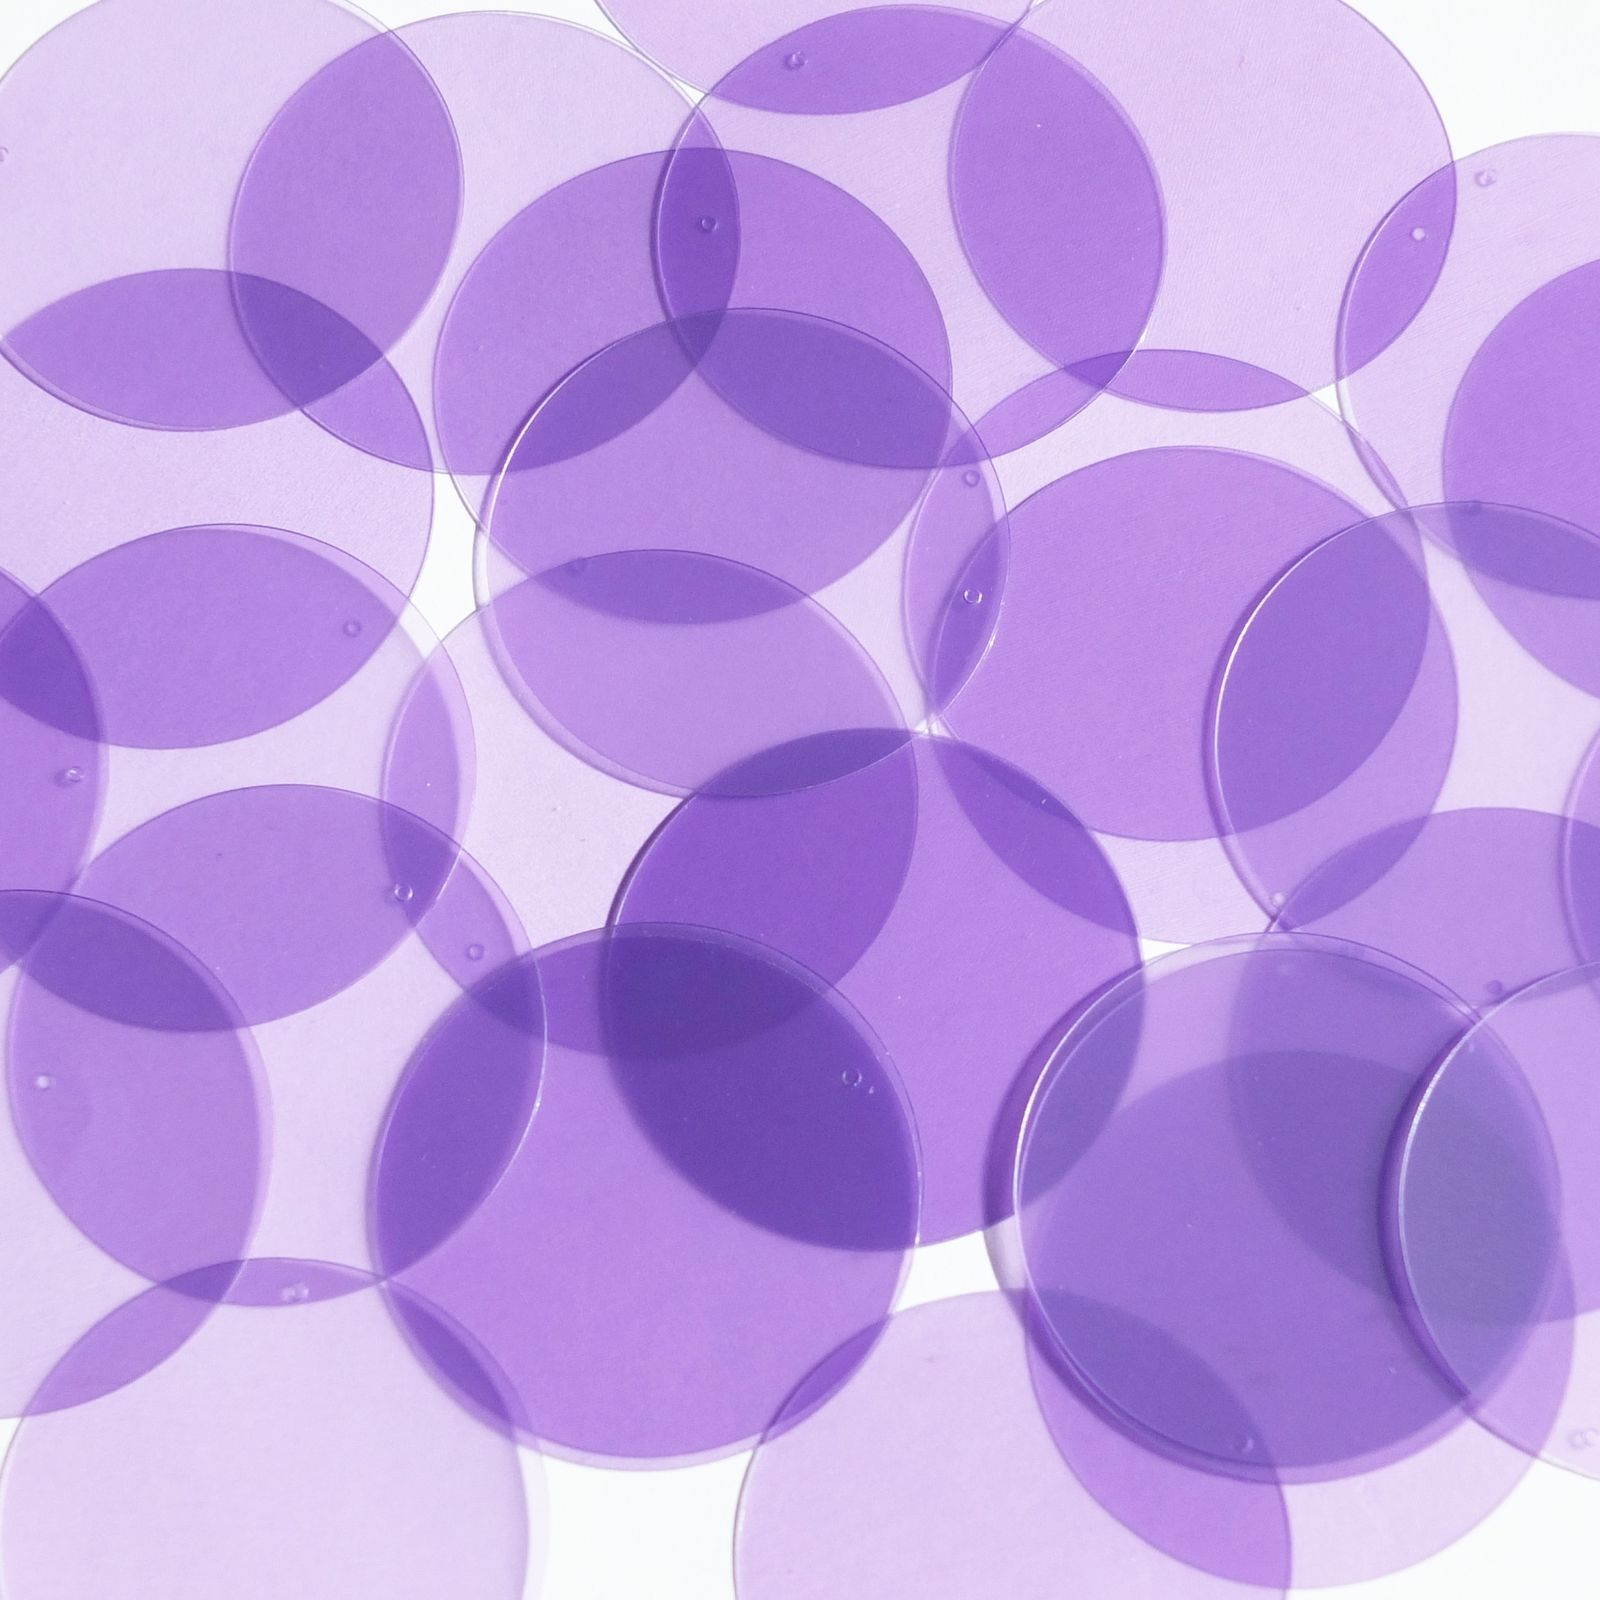 Primary image for Round Sequin 40mm Light Amethyst Purple Transparent Glossy Matte Reversible